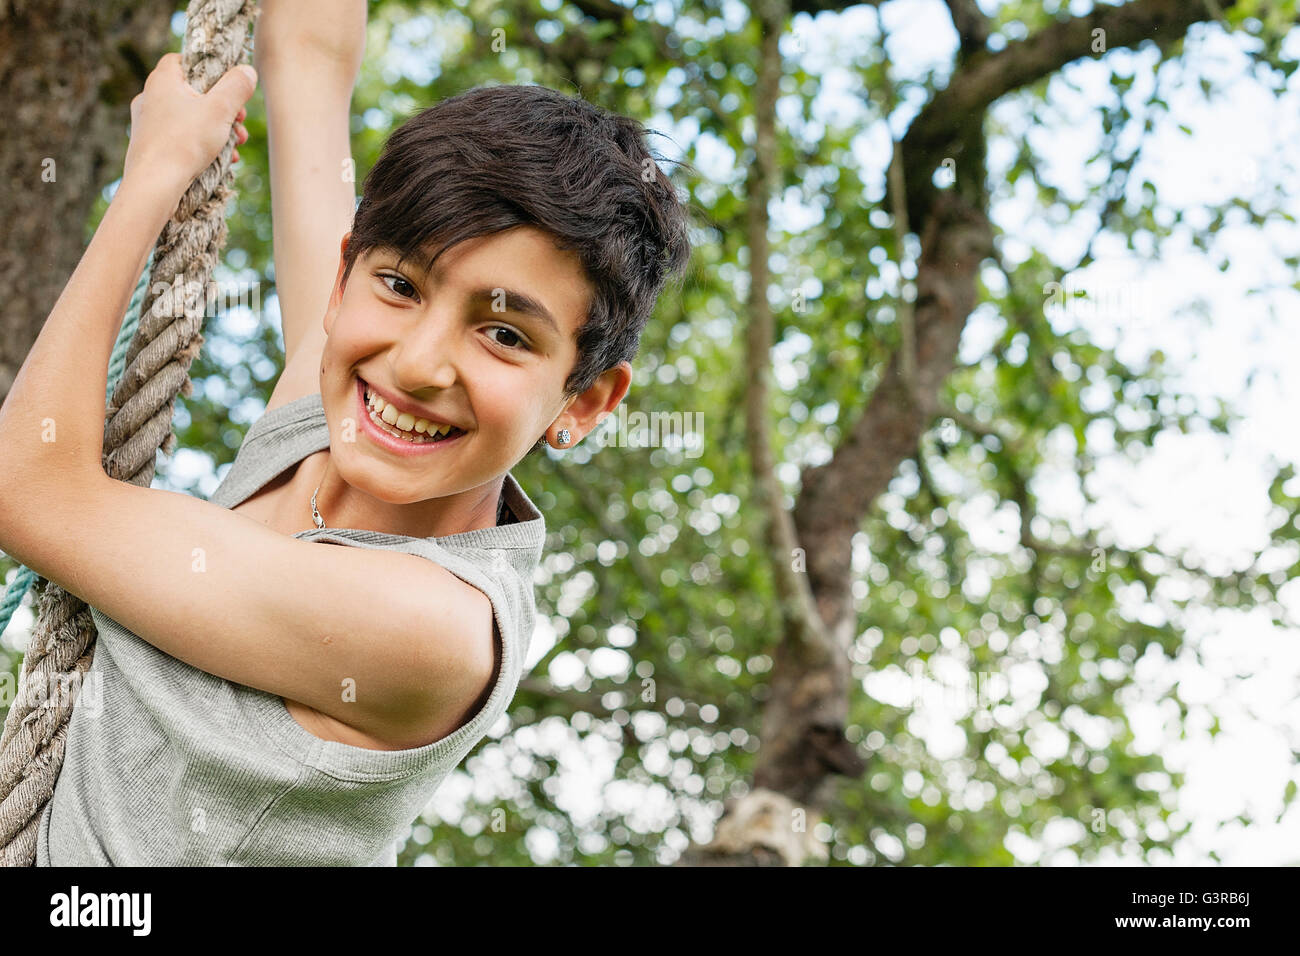 Sweden, Varmland, Filipstad, Gasborn, Horrsjon, Boy (10-11) playing on rope - Stock Image